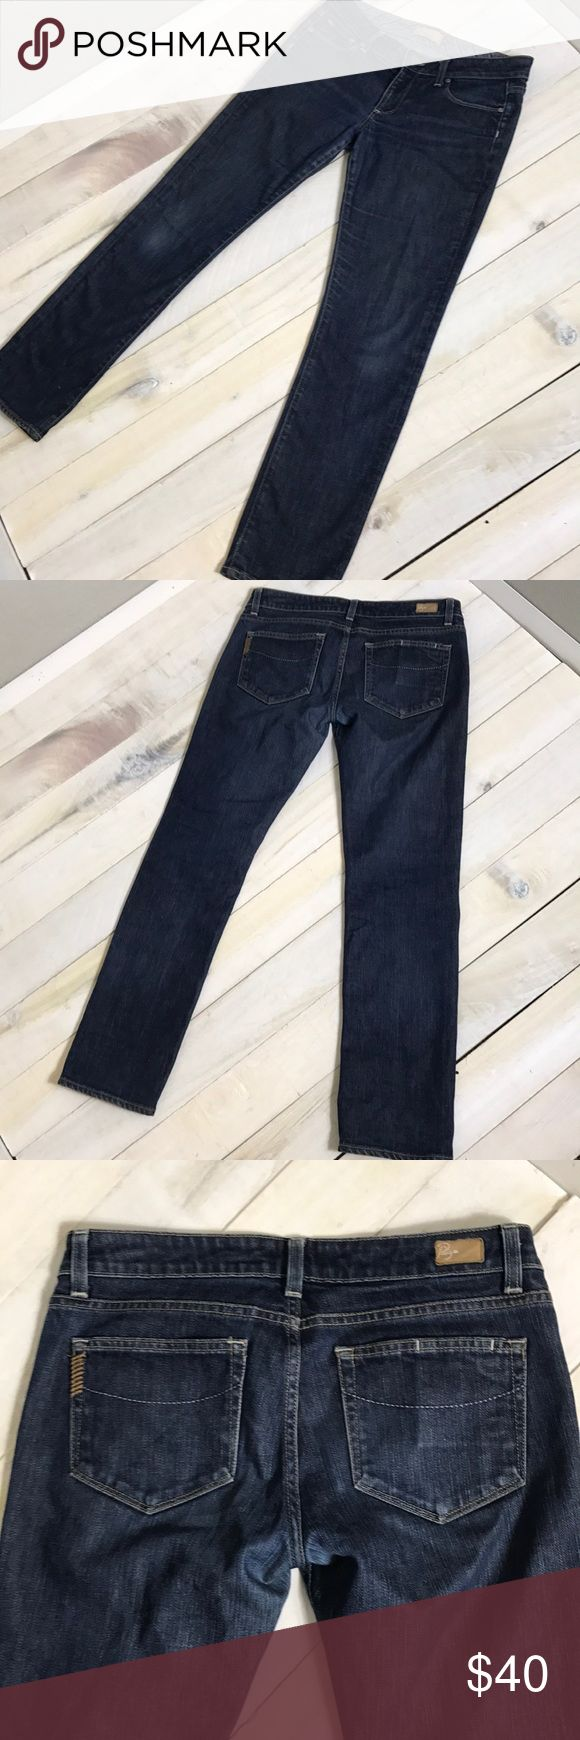 """Paige Roxbury Jeans size 30 Paige Roxbury Jeans size 30. Straight leg Waist- 17"""" Across  Rise- 8"""" Inseam- 29.5"""" 98% Cotton, 2% Spandex Some lighter patches from wear at the knee as shown. PAIGE Jeans Straight Leg"""